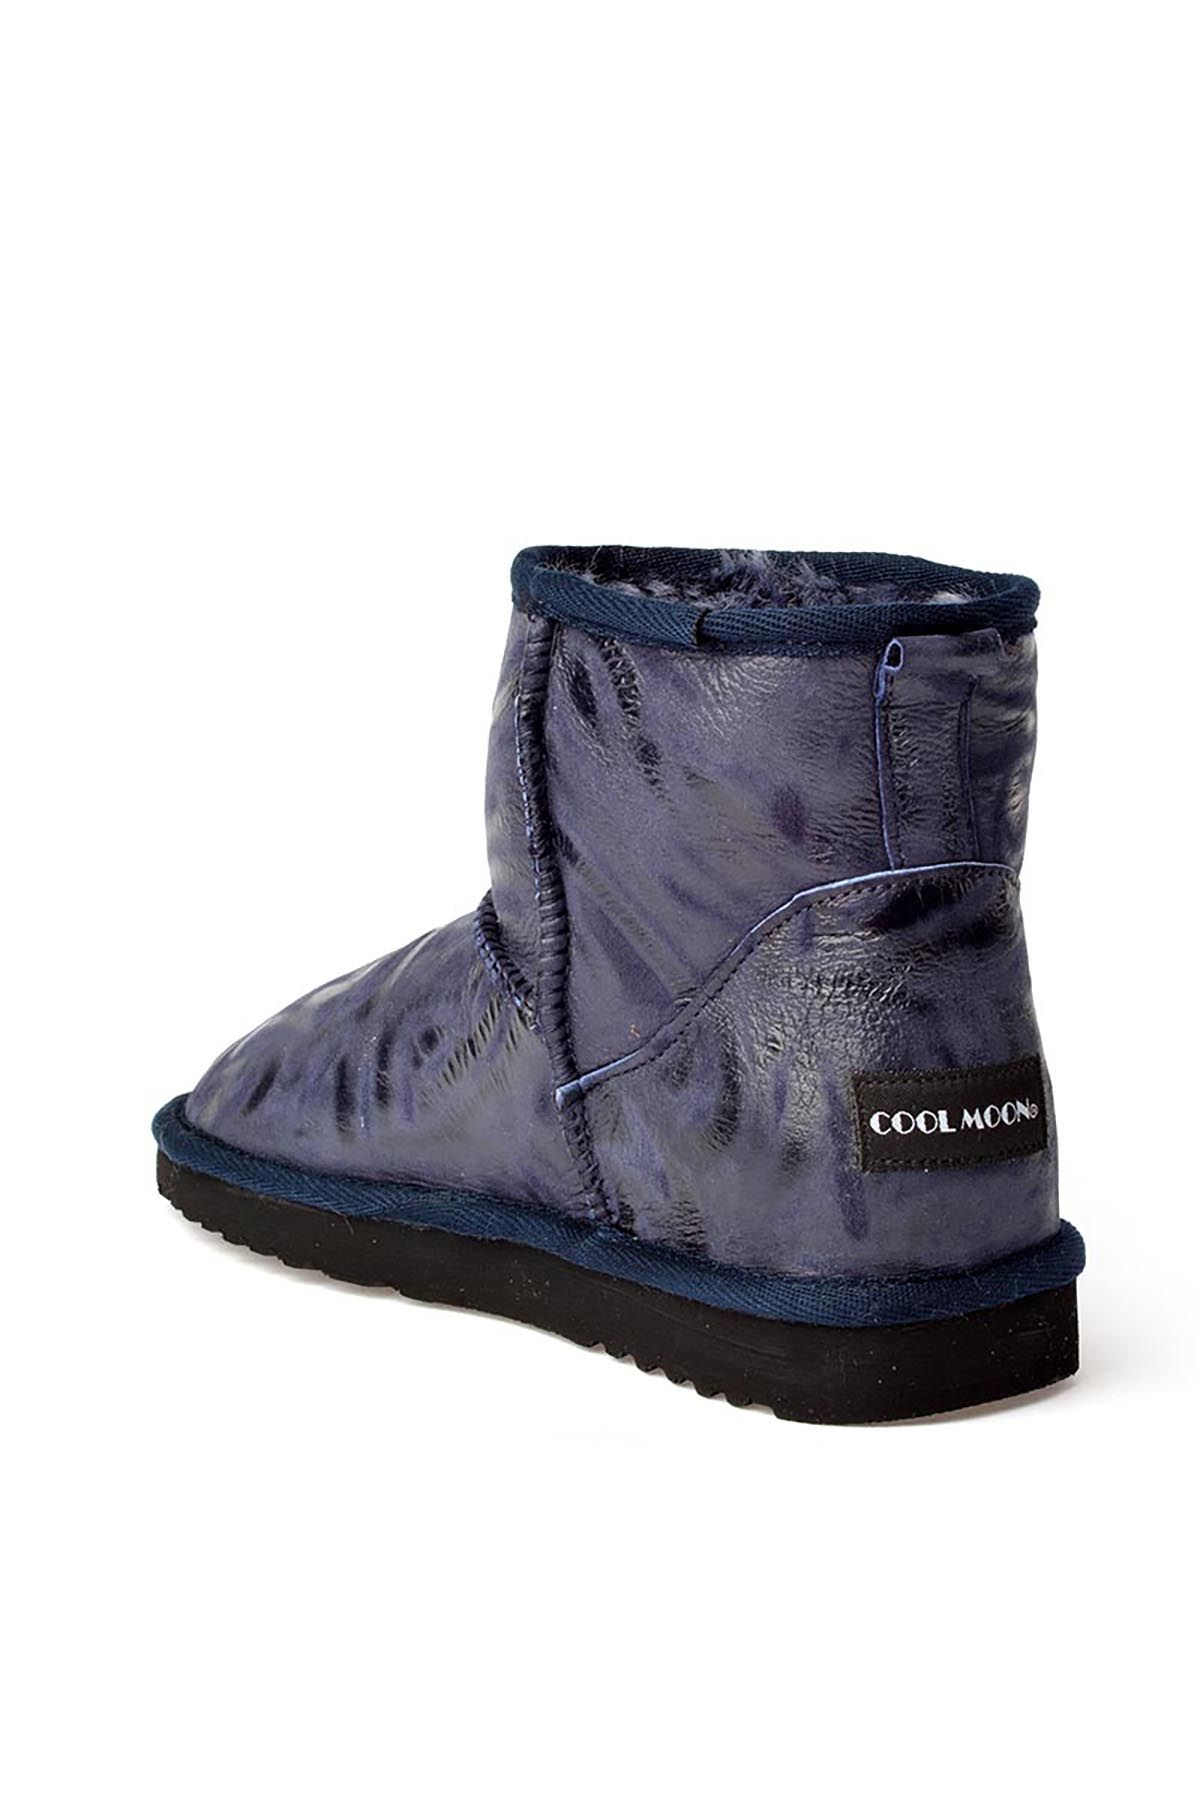 Cool Moon Patterned Women Uggs From Genuine Fur Navy blue